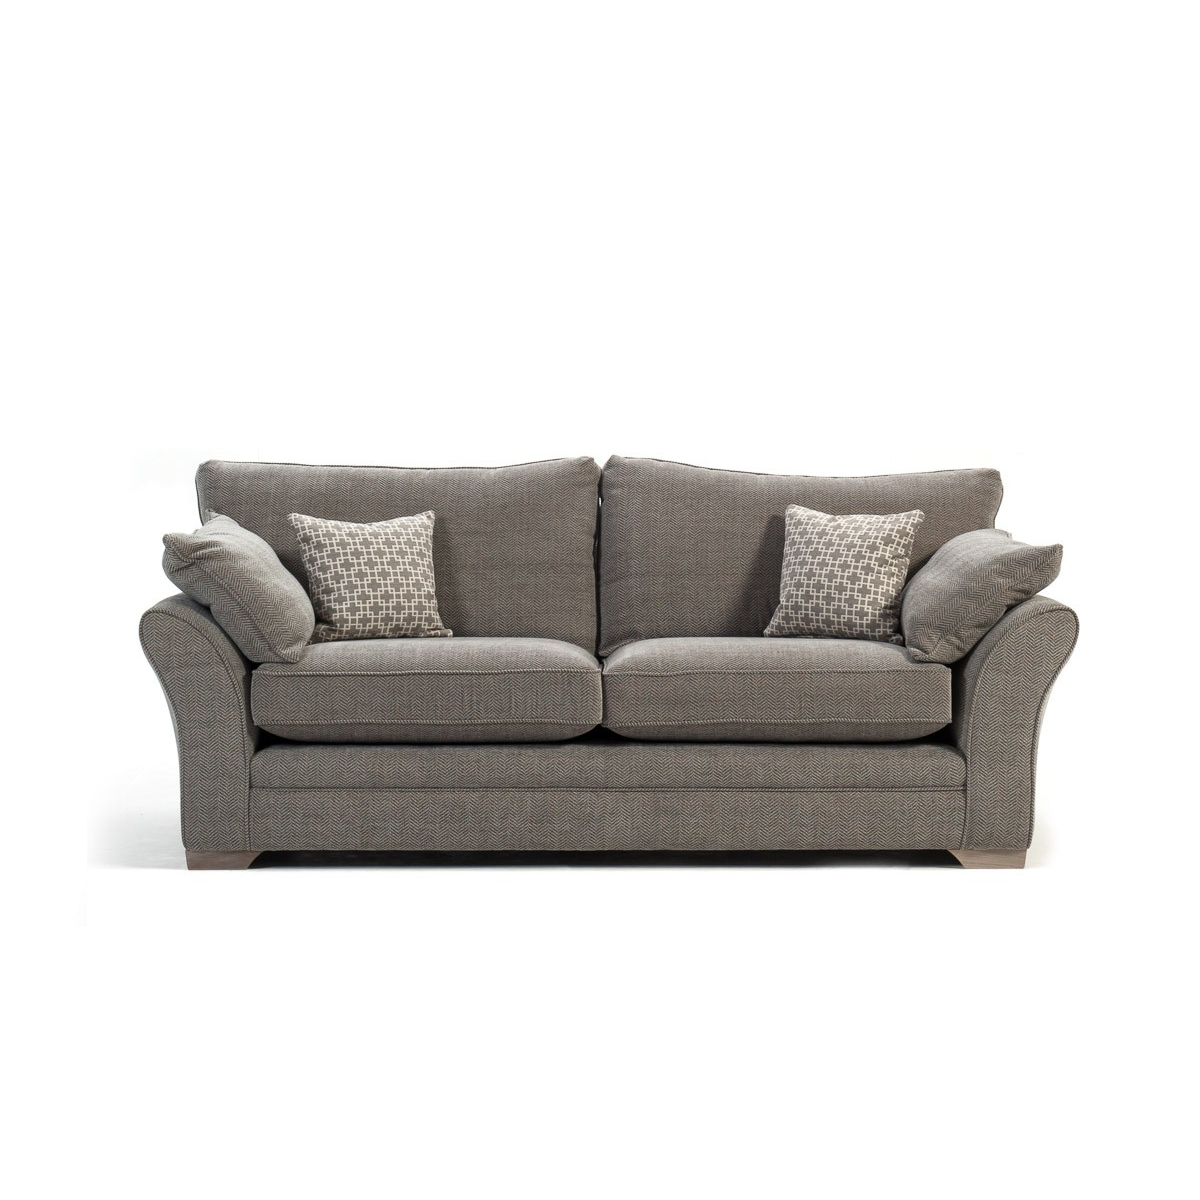 Strathclyde Large Sofa